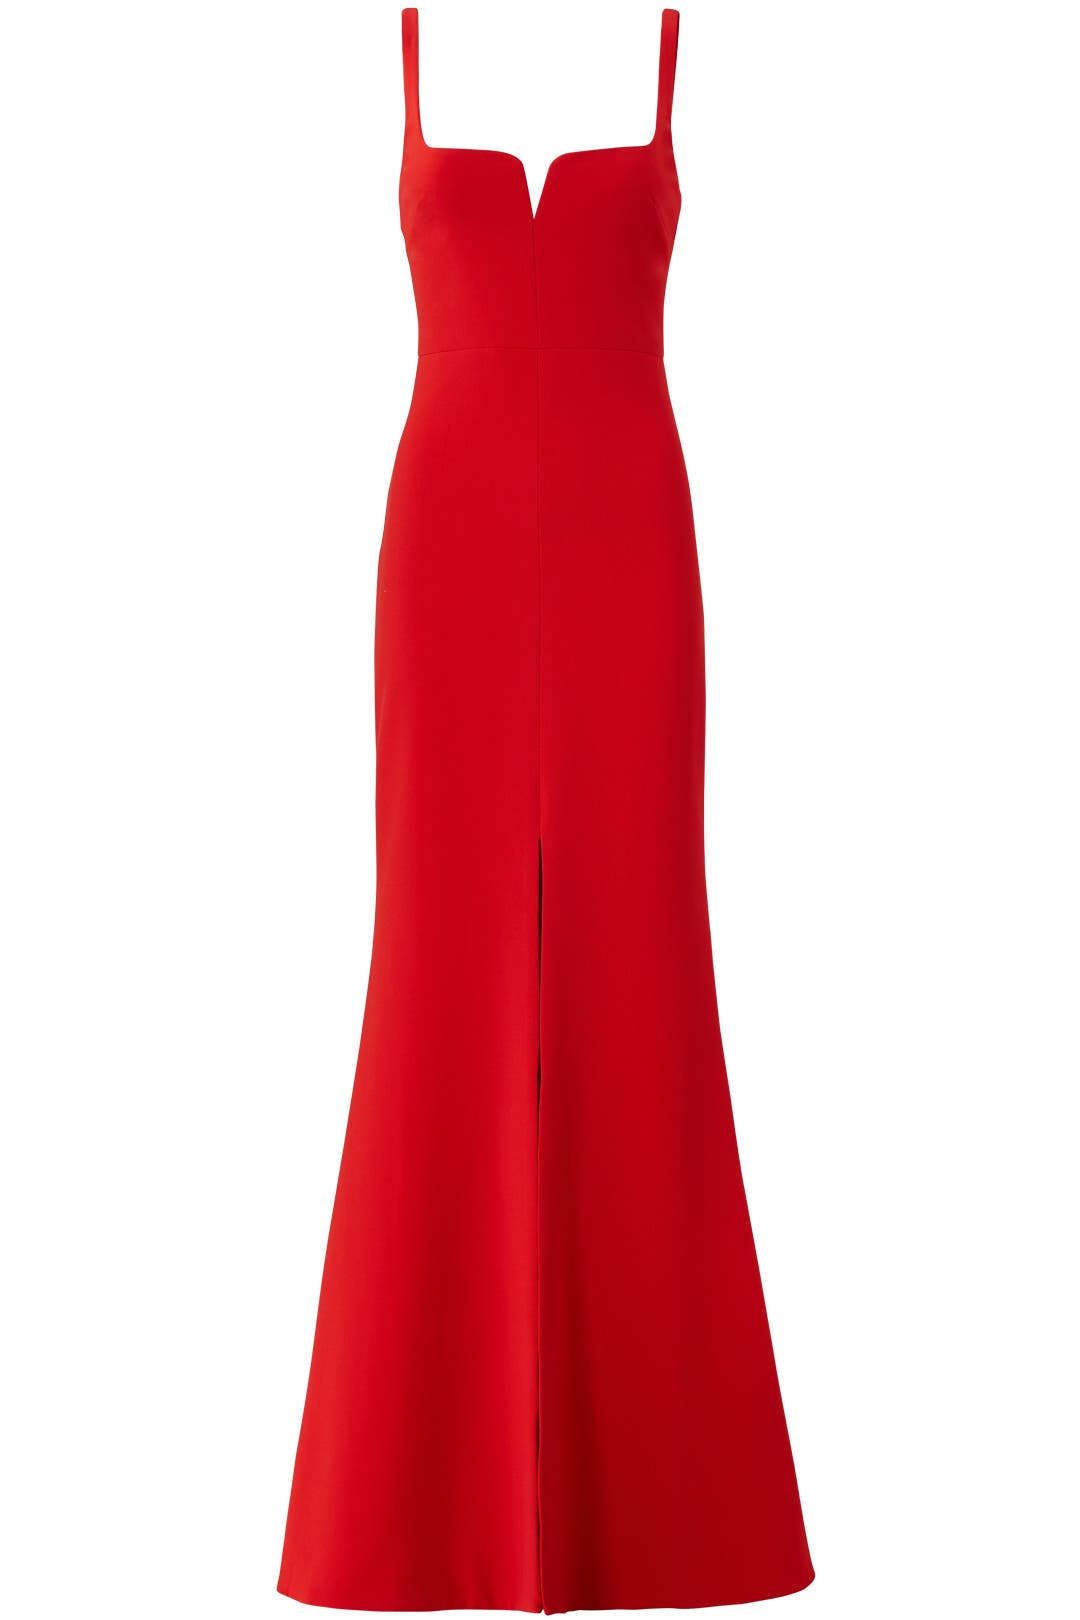 Red Constance Gown by LIKELY for $70 - $80 | Rent the Runway